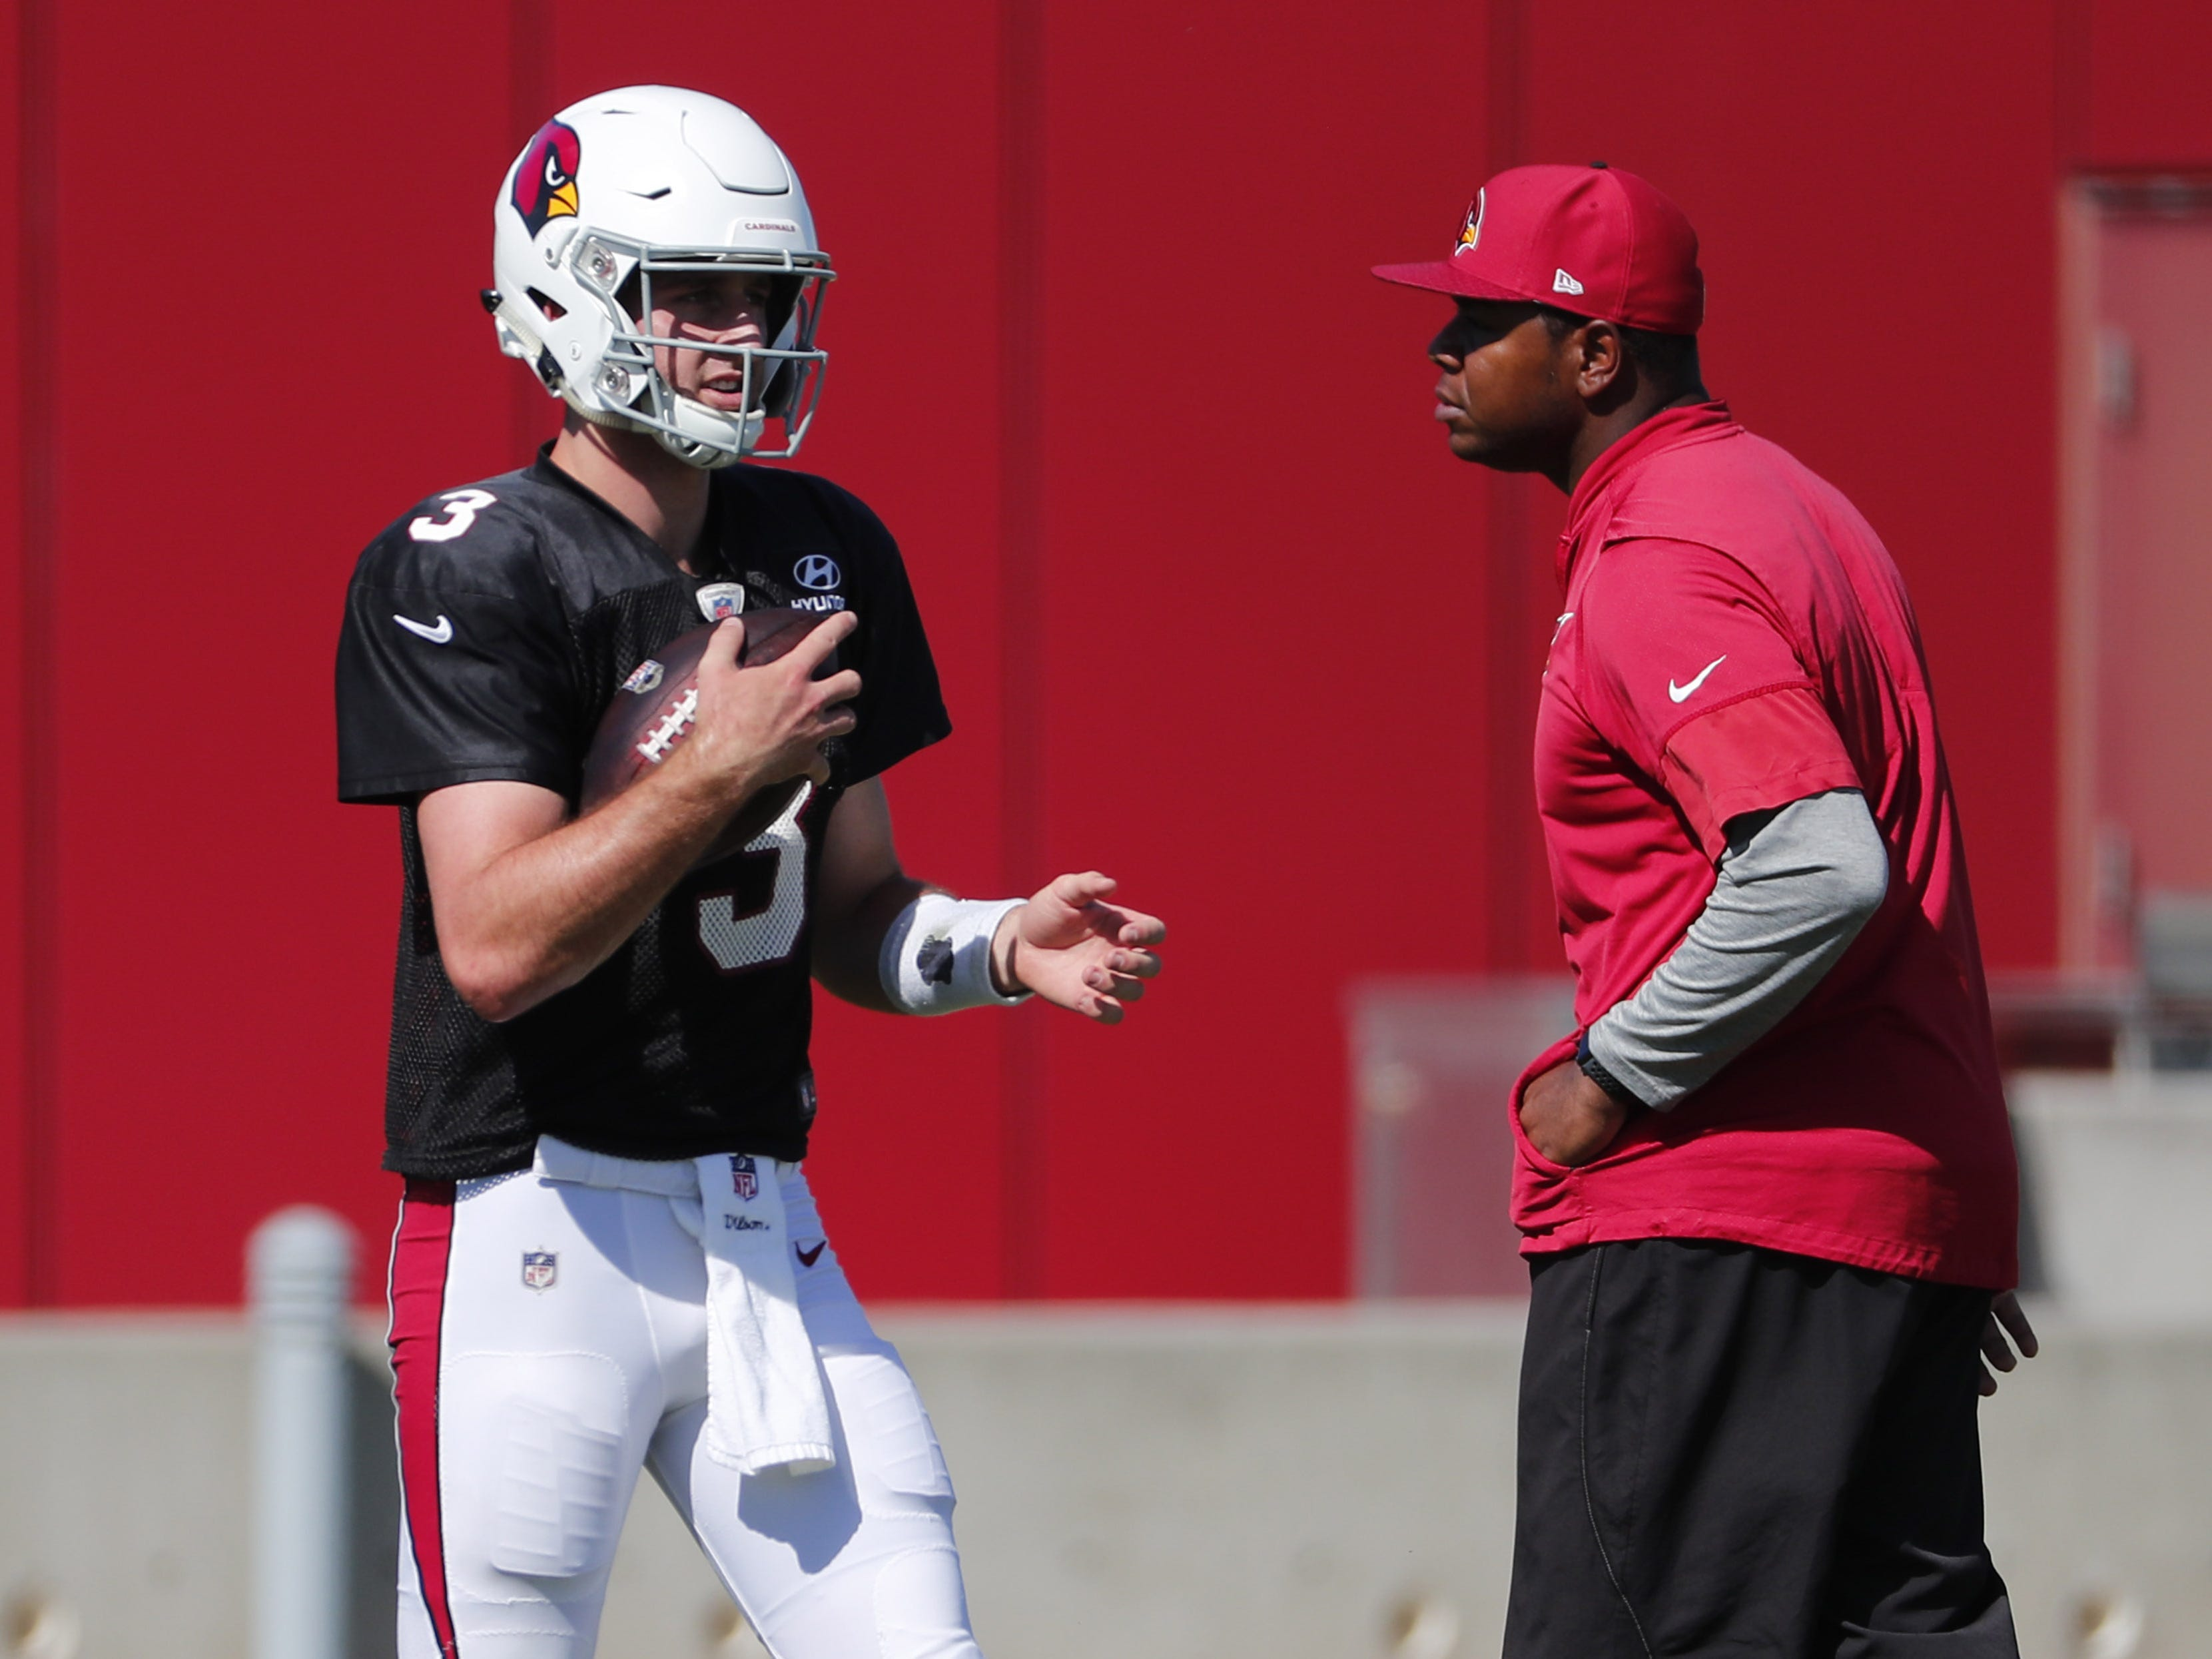 Arizona Cardinals quarterback Josh Rosen (3) and offensive coordinator Byron Leftwich walk between drills during practice in Tempe, Ariz. October 24, 2018.